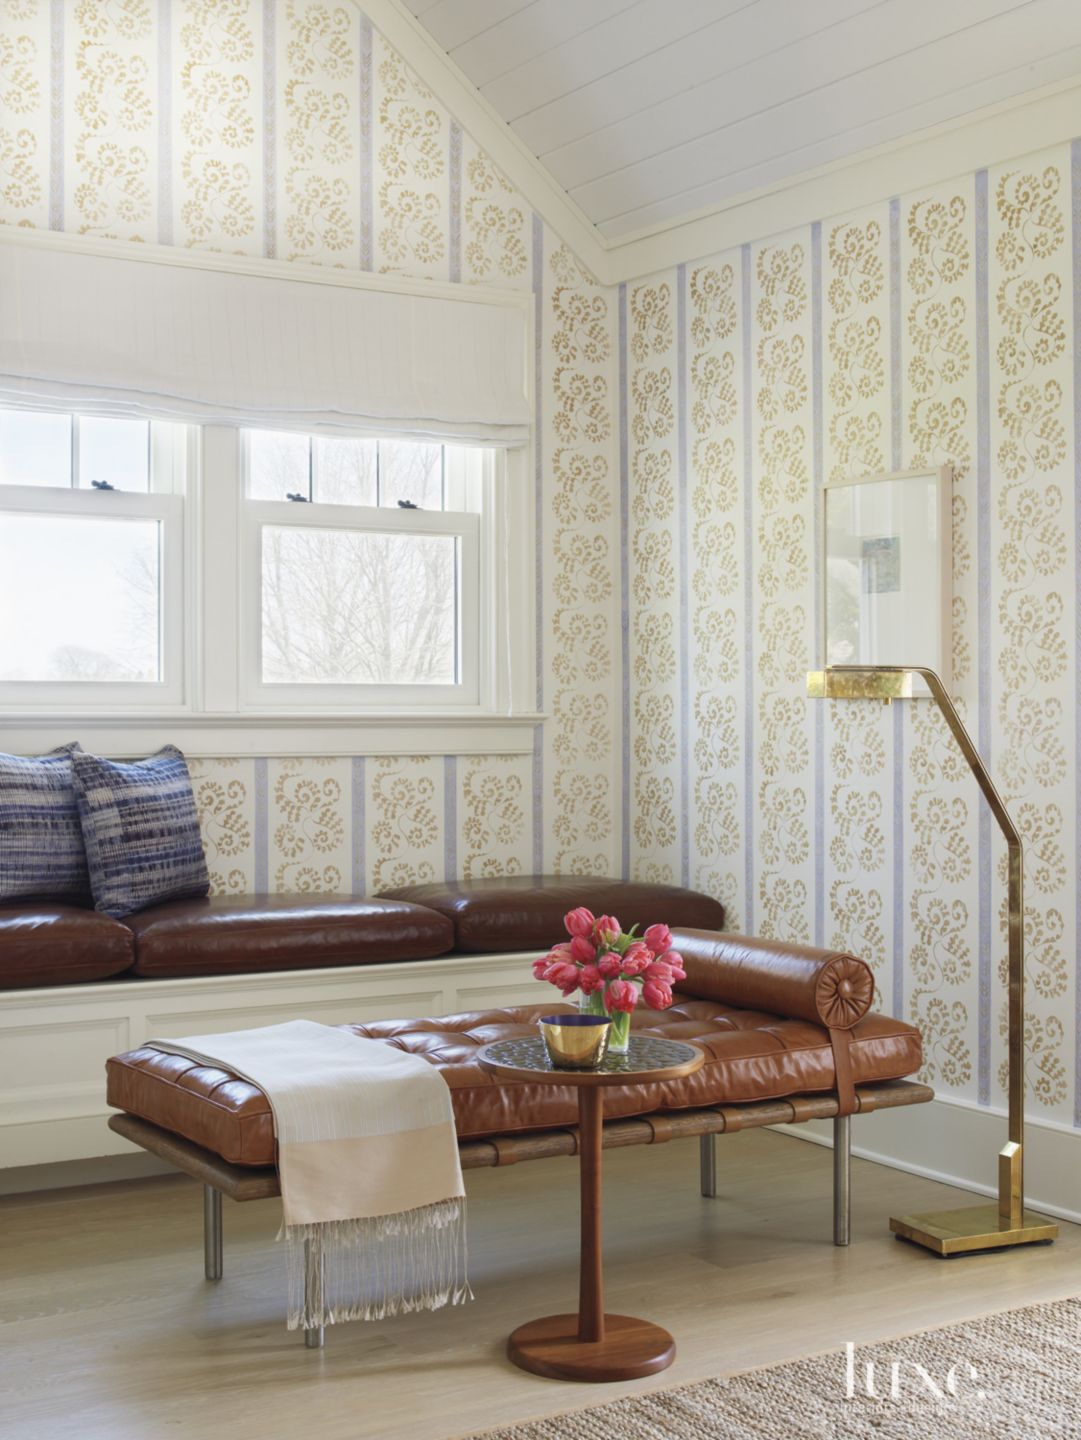 Transitional Bedroom Sitting Area with Leather Banquette